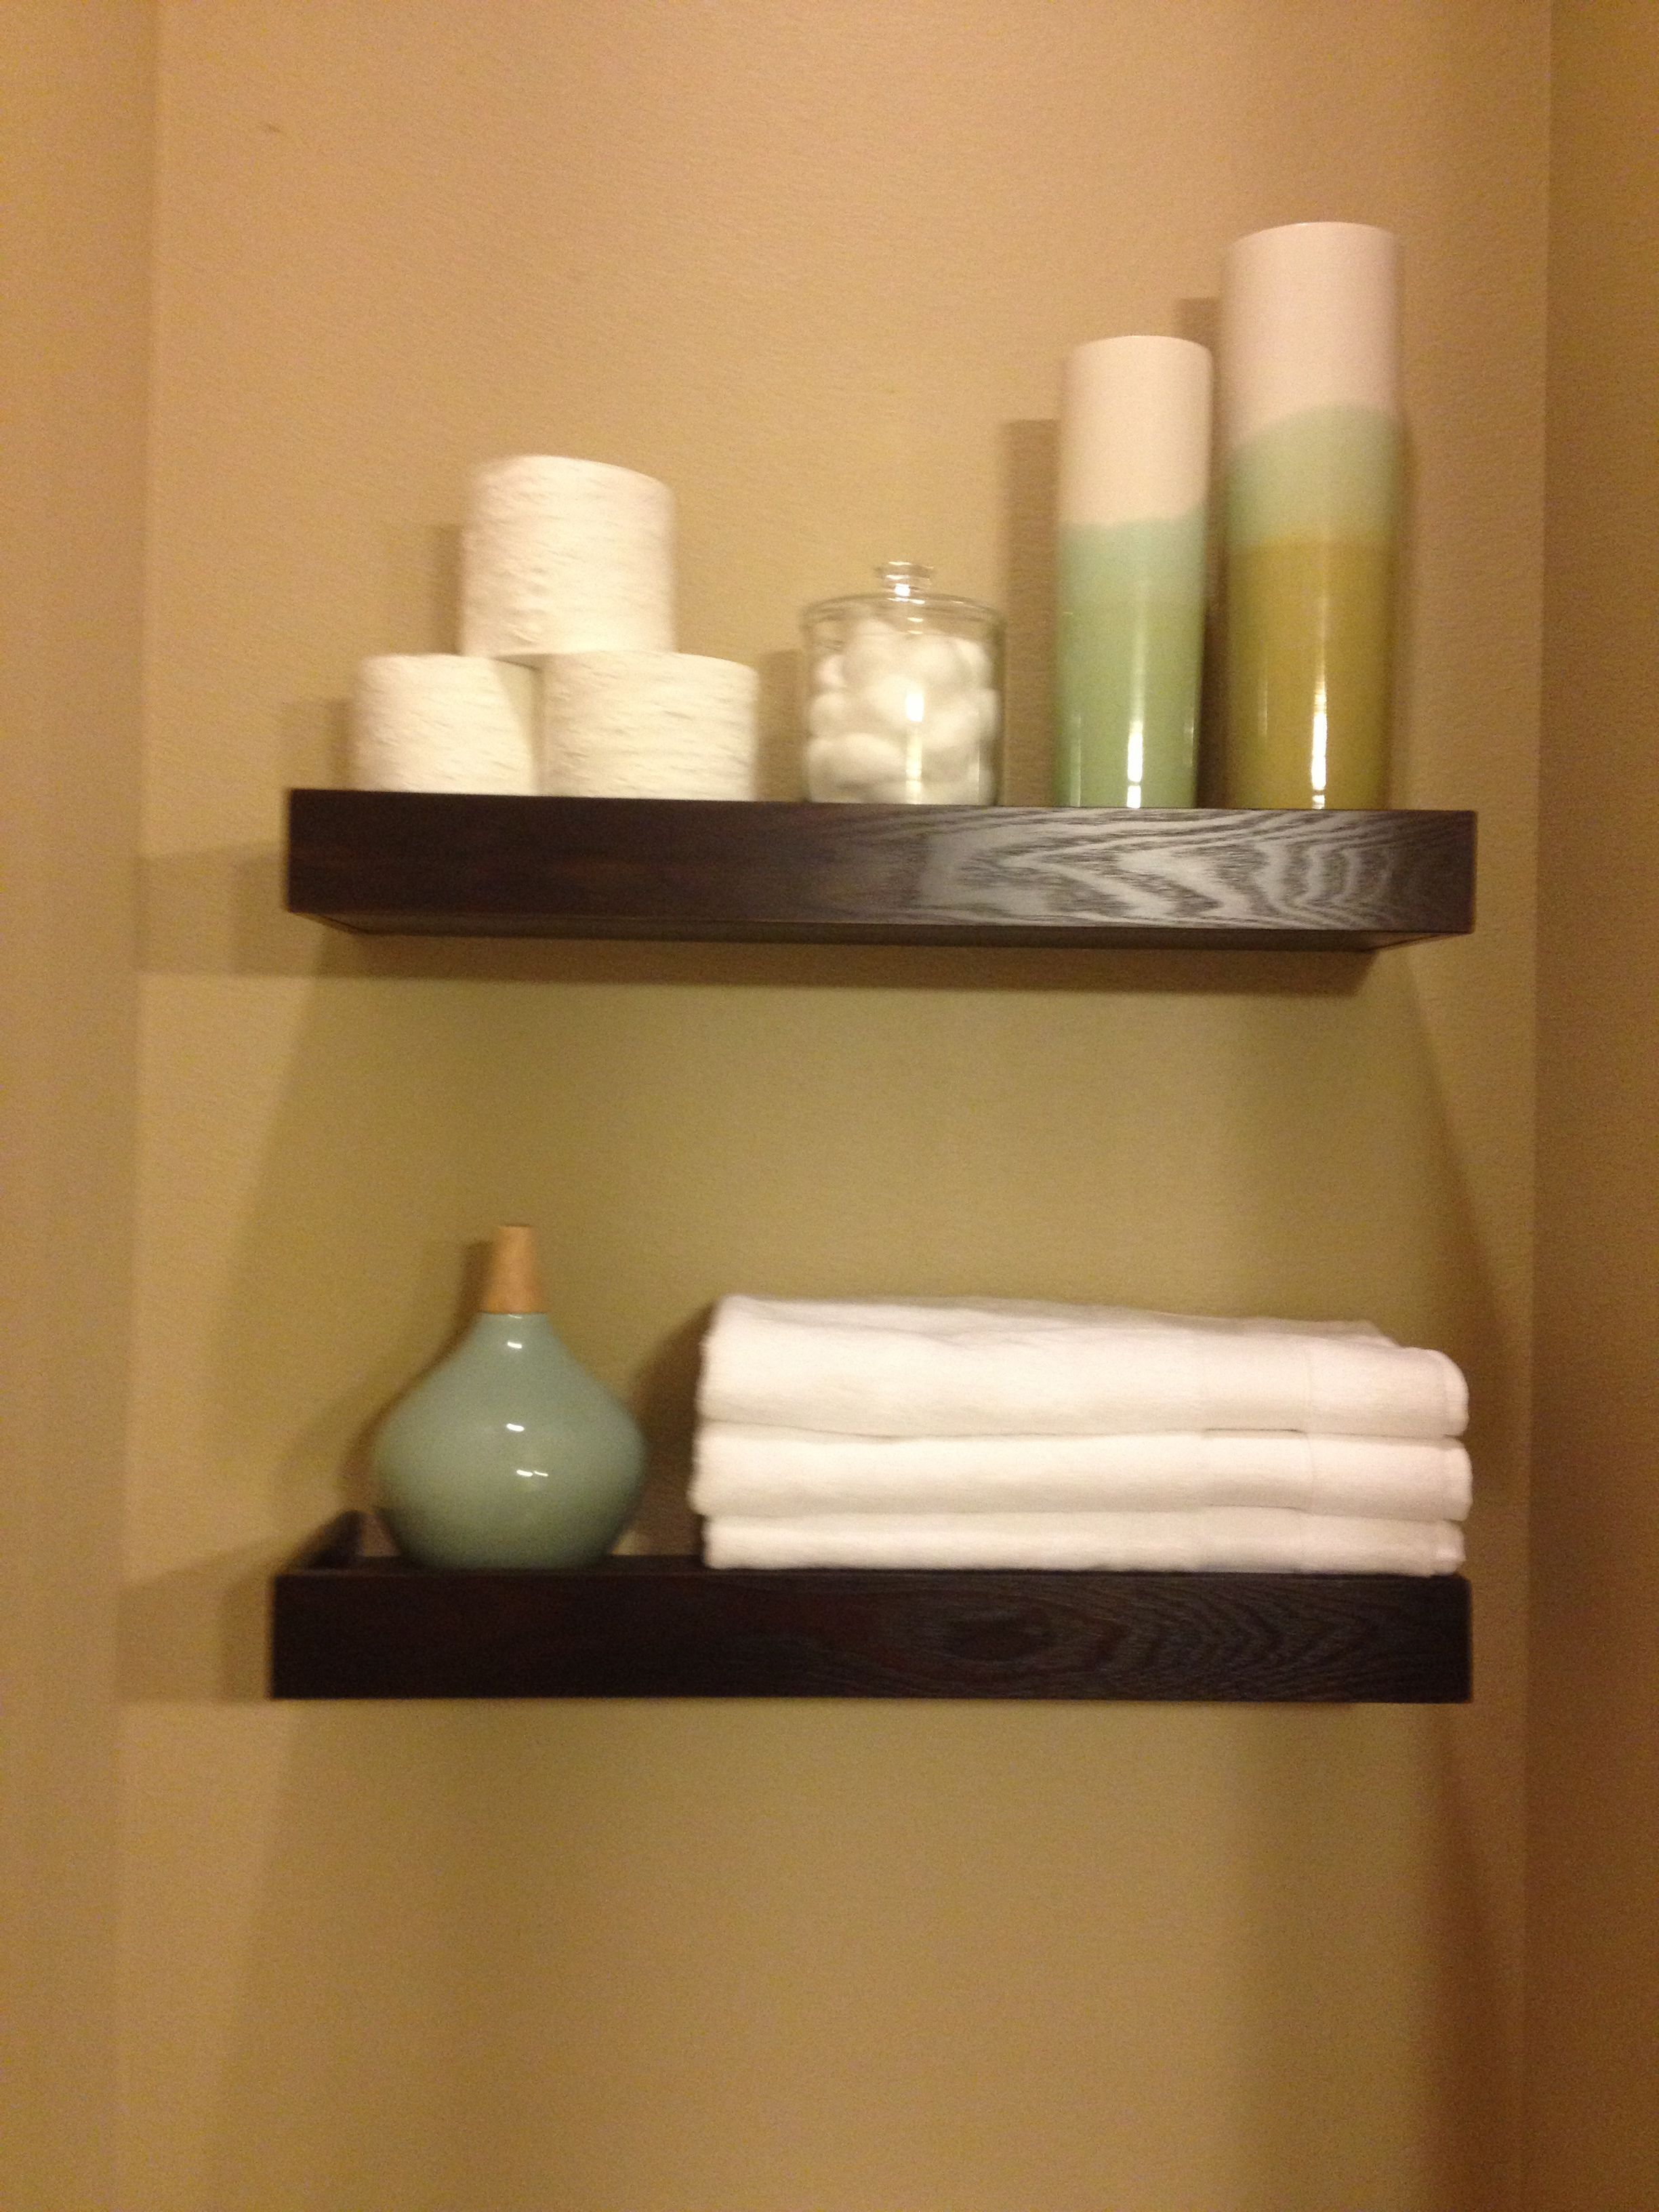 Floating Shelves Above Toilet  Downstairs Bath